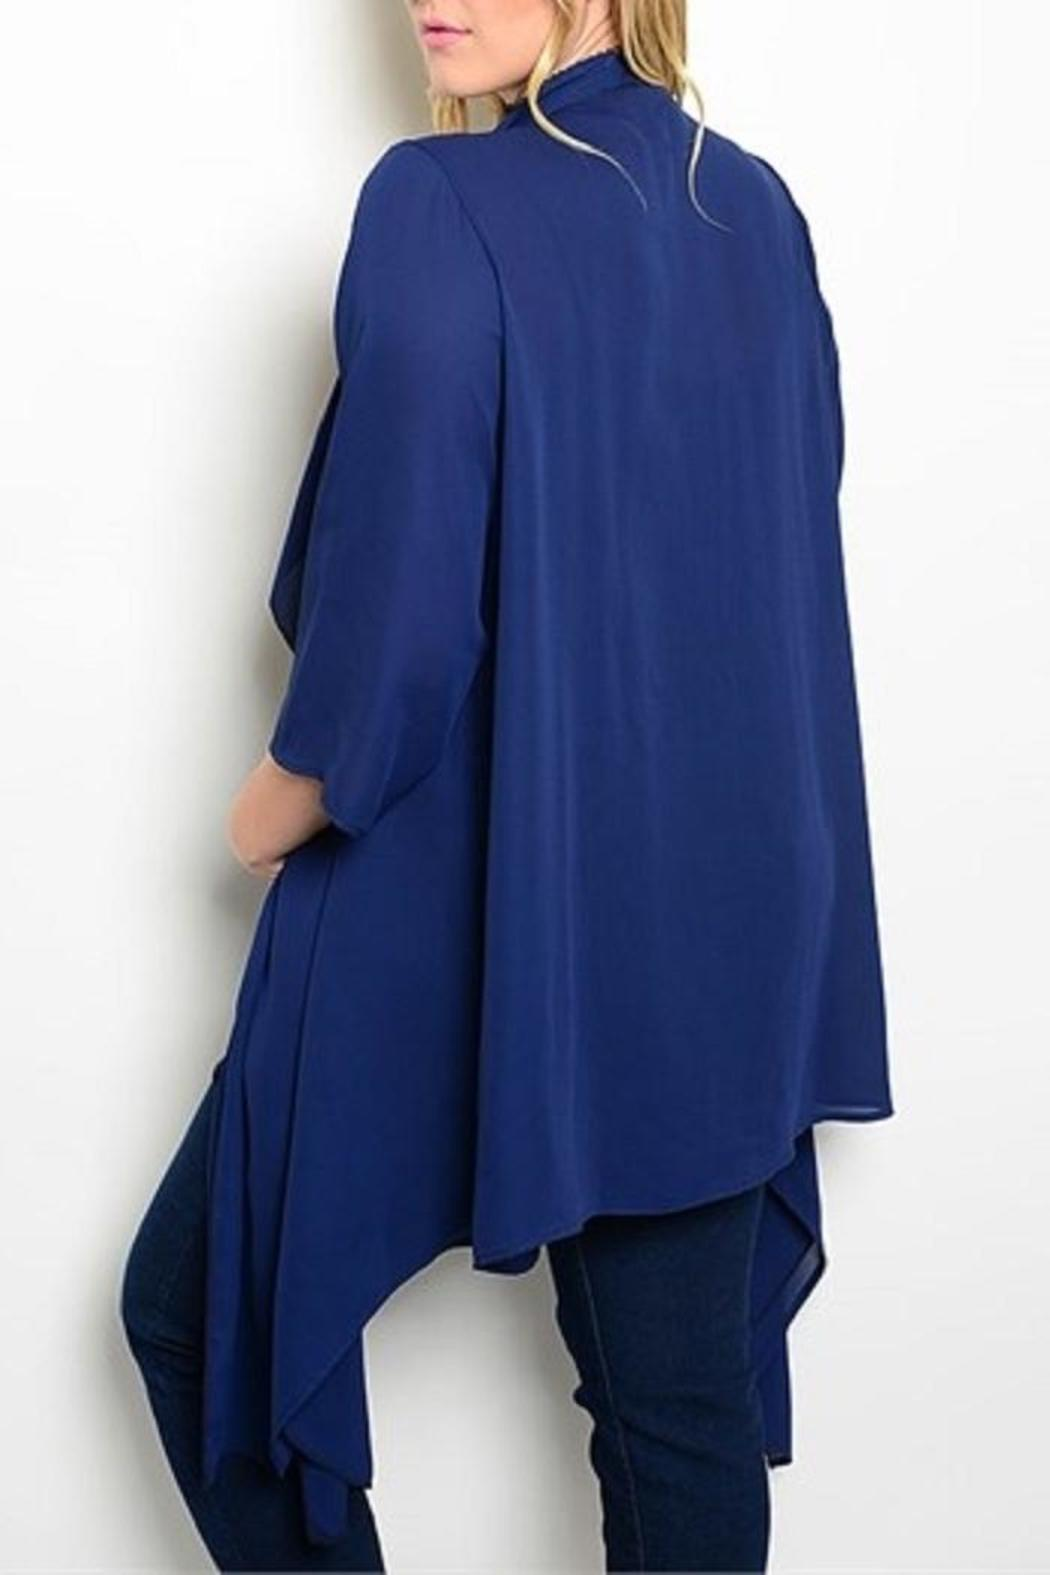 true light Navy Plus Cardigan from Texas by Ooh La La Boutique ...